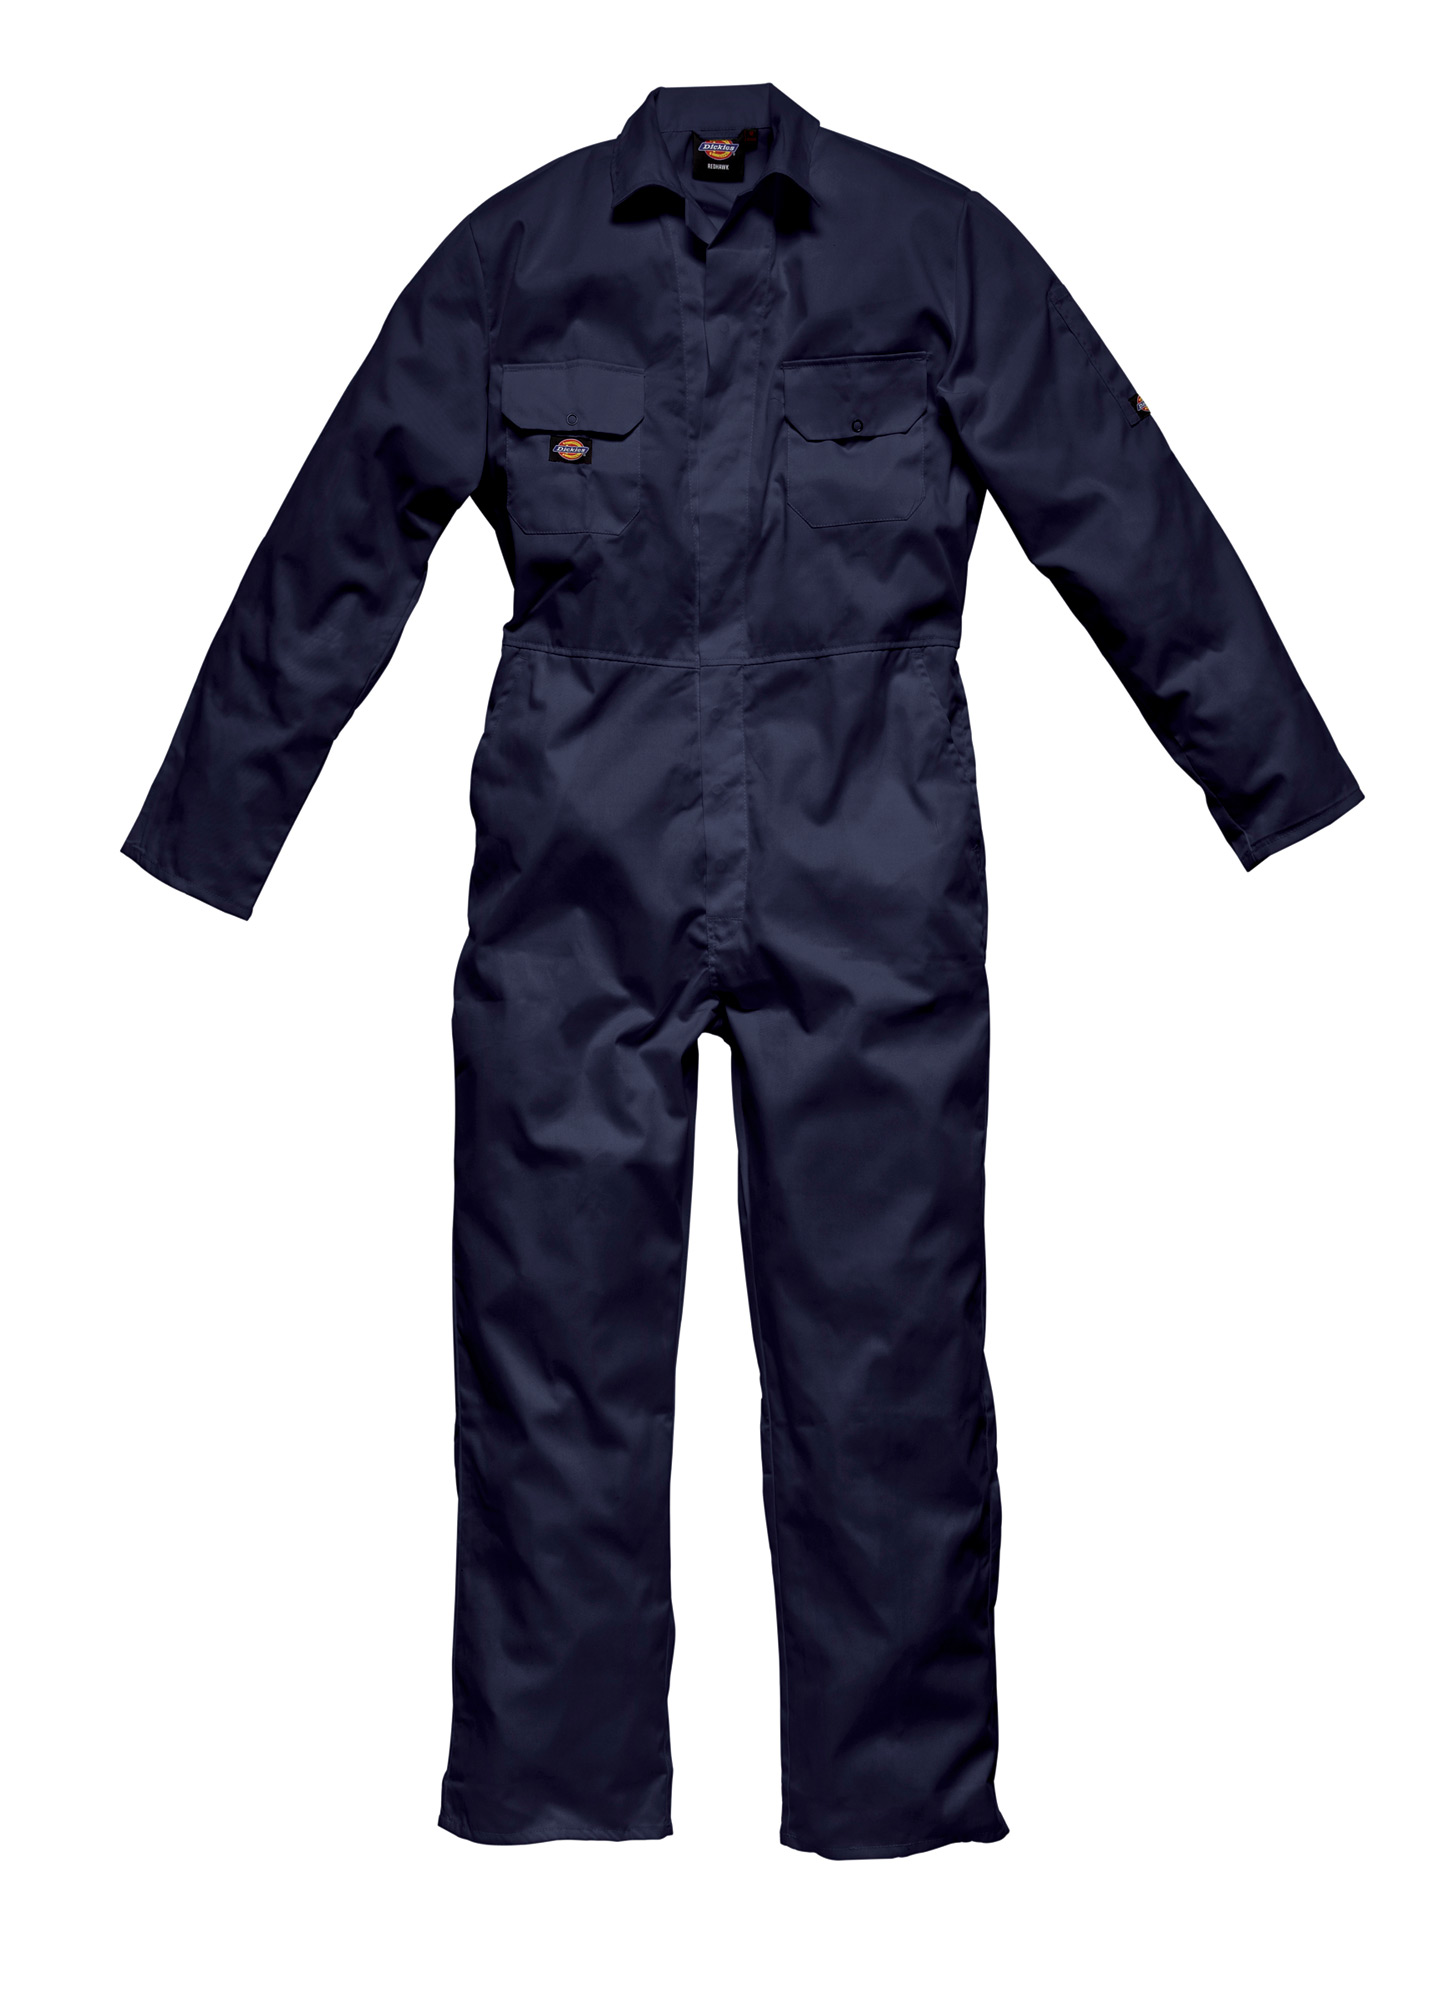 Dickies Clothes. Dickies has developed an innovative clothing line that encompasses everything from jackets, coats, work pants, shorts and shirts, to denim jeans, overalls, coveralls and medical scrubs that all deliver great value!